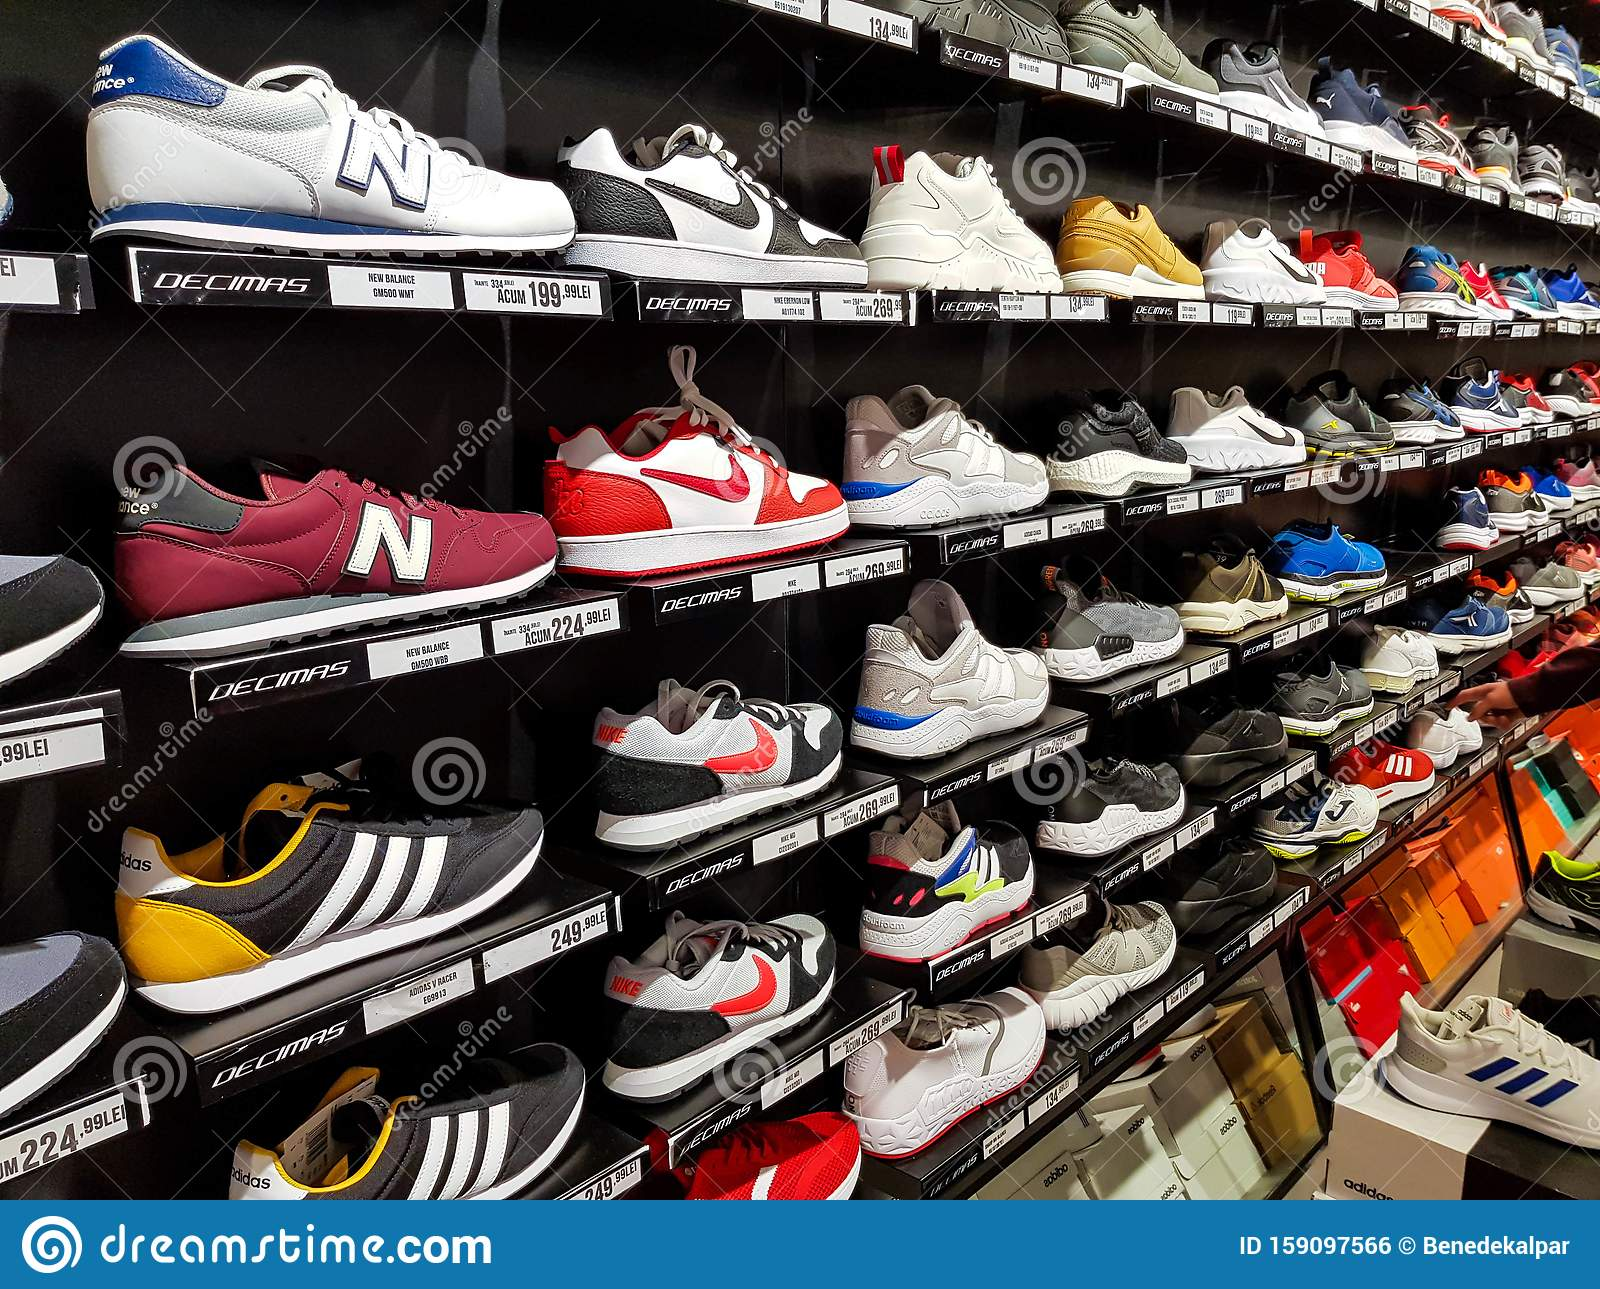 nike shoes and adidas